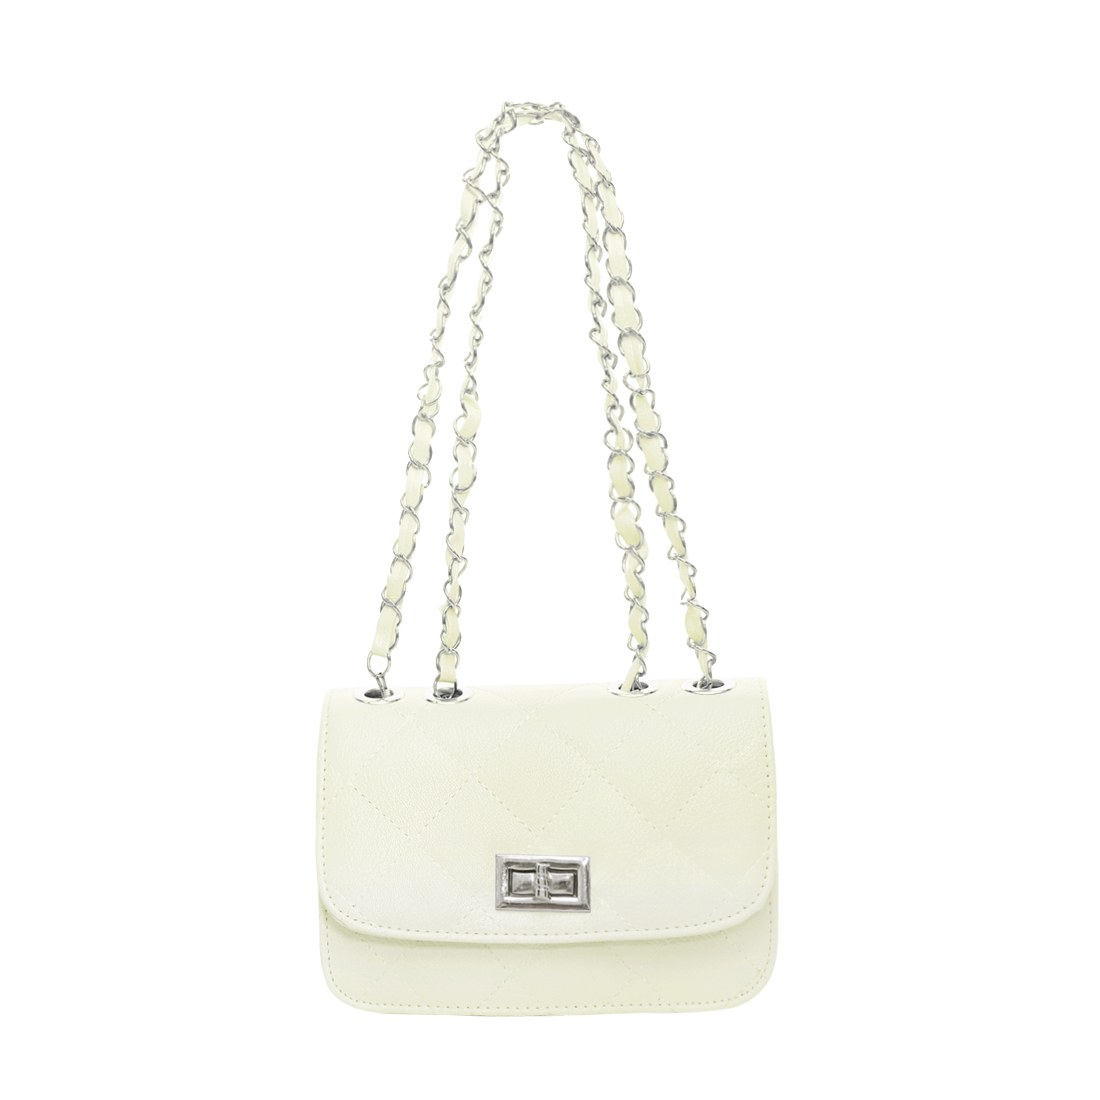 Lady Argly Design Iterior Pocket Fully Lined Shoulder Bag Mini Bag White